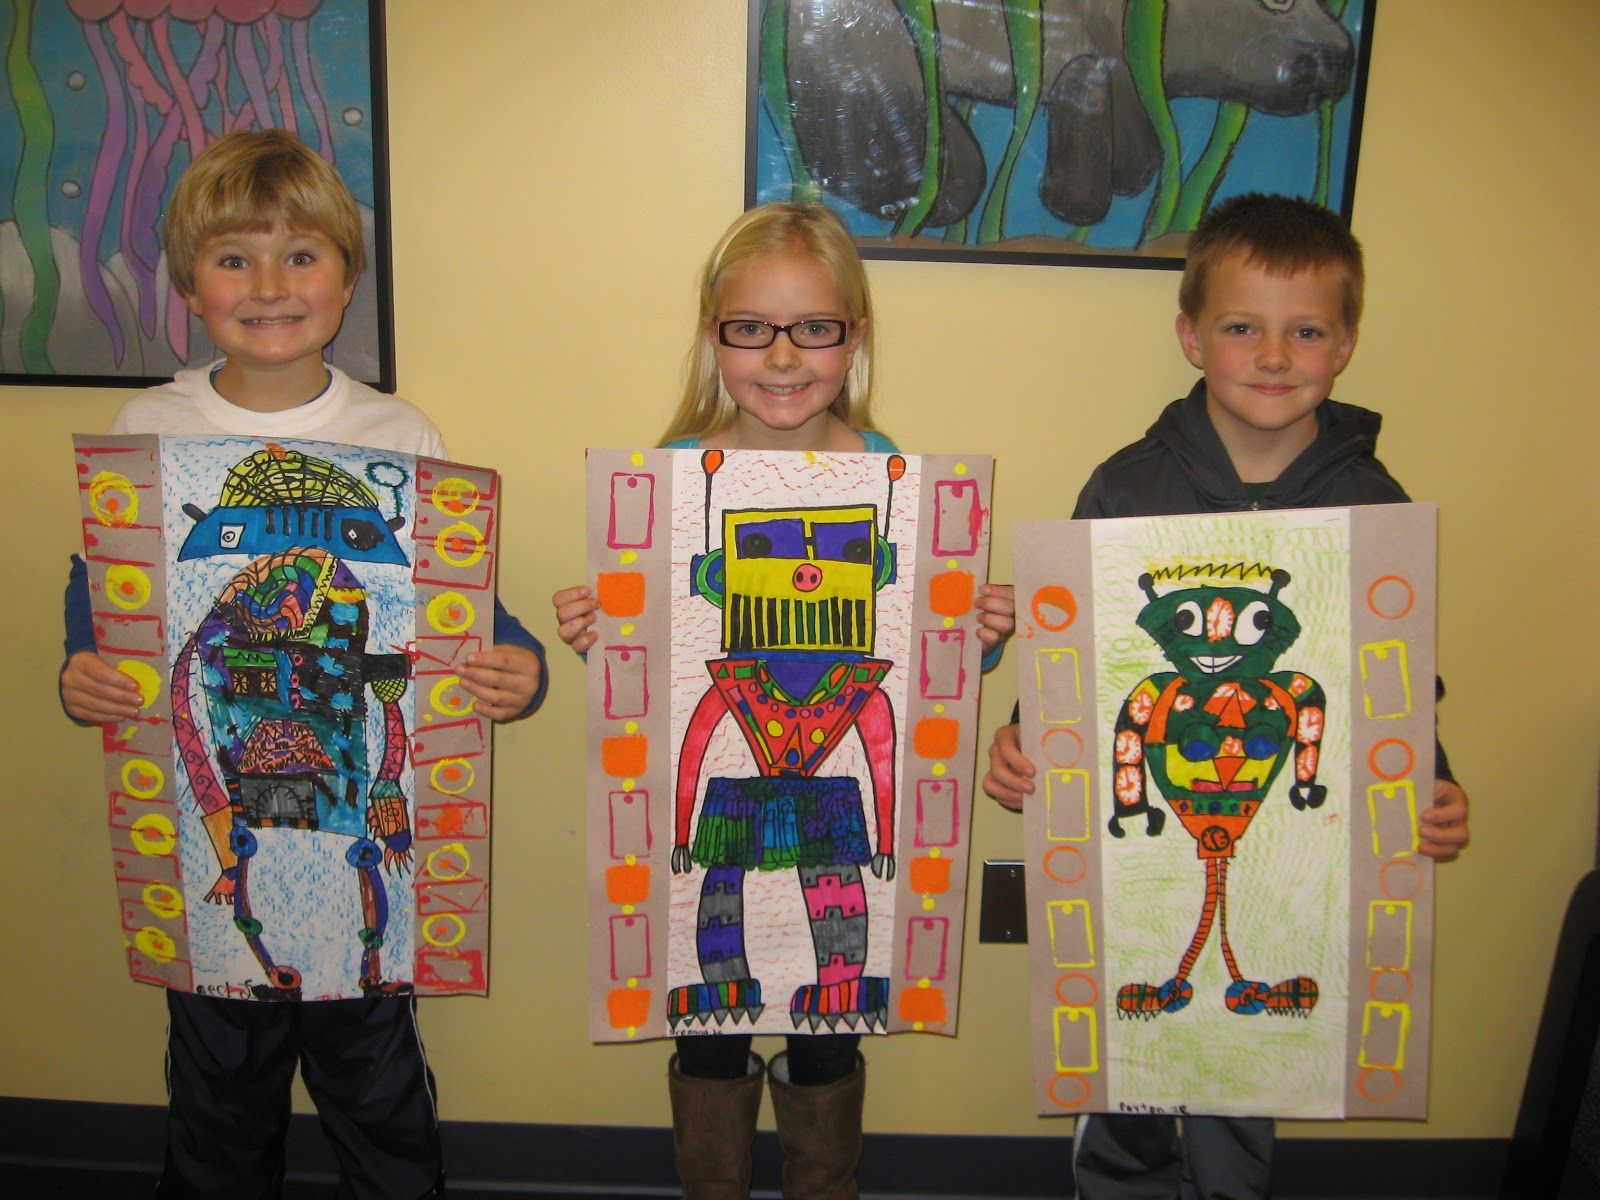 Davinci Inspired Robot Art By 2nd Graders